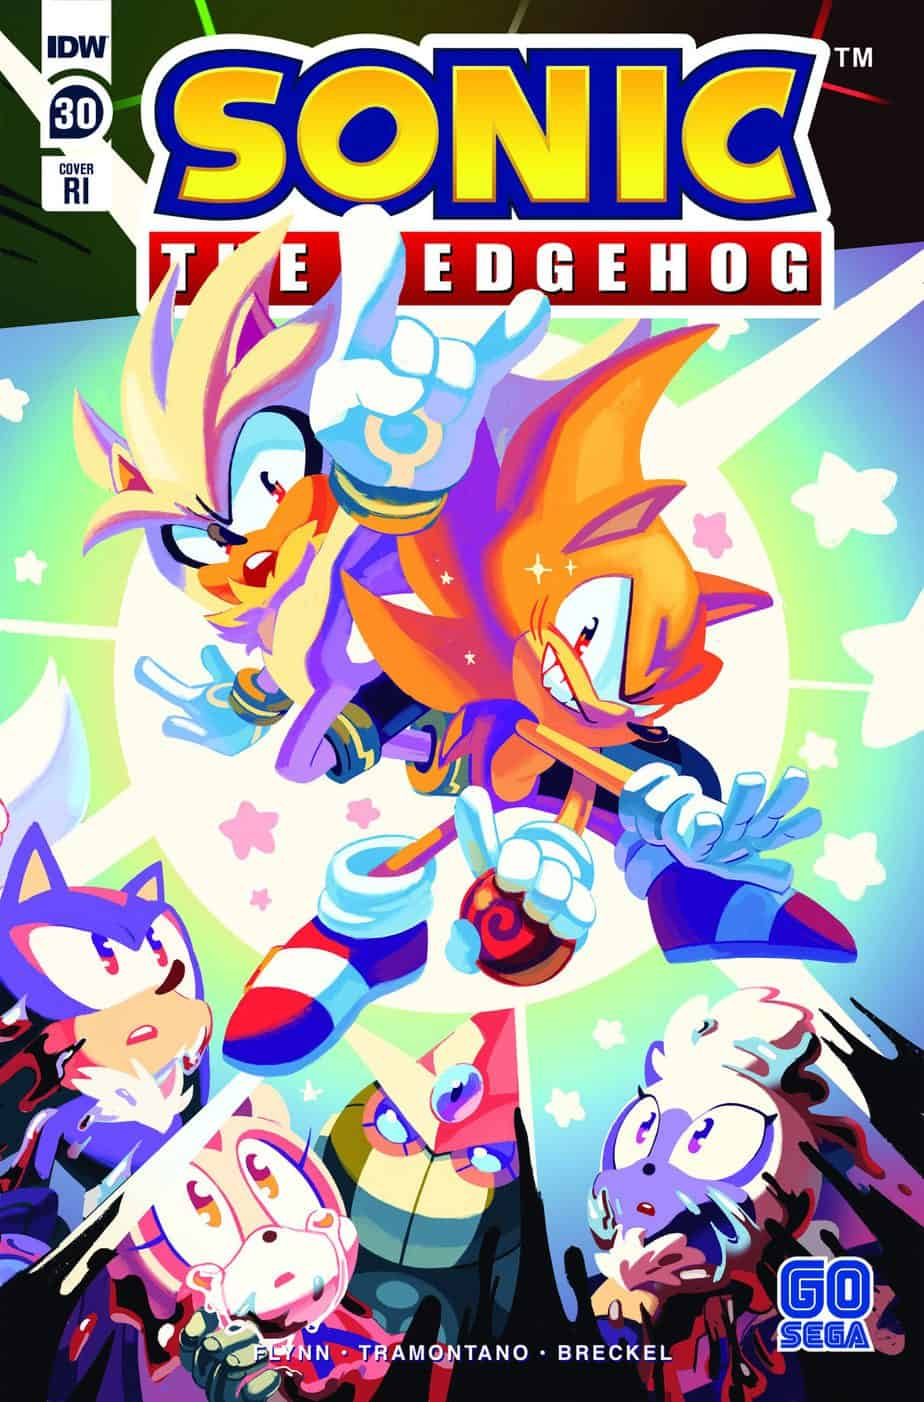 Idw Sonic Issue 30 Retailer Incentive Cover Builds On Metal Virus Montage The Sonic Stadium